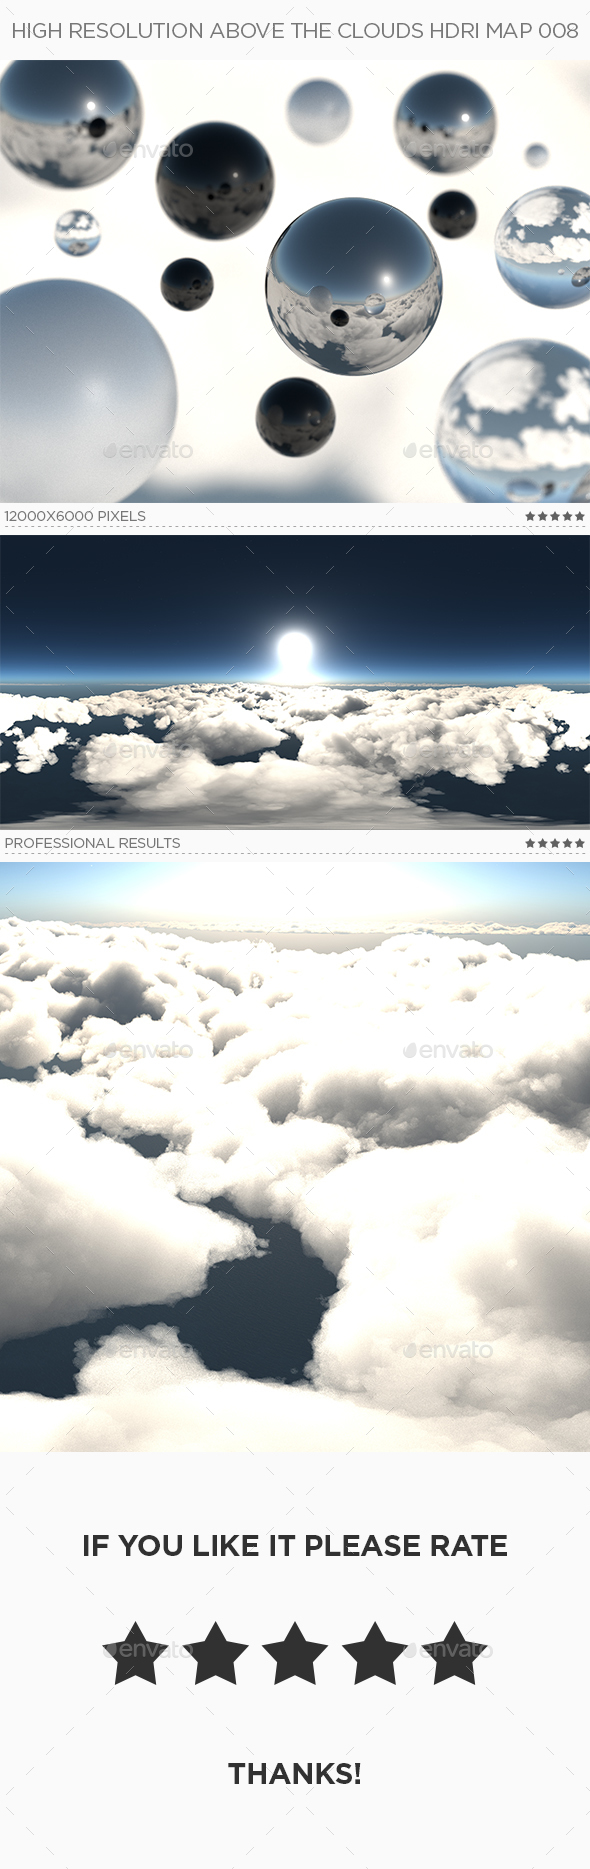 3DOcean High Resolution Above The Clouds HDRi Map 008 20318152